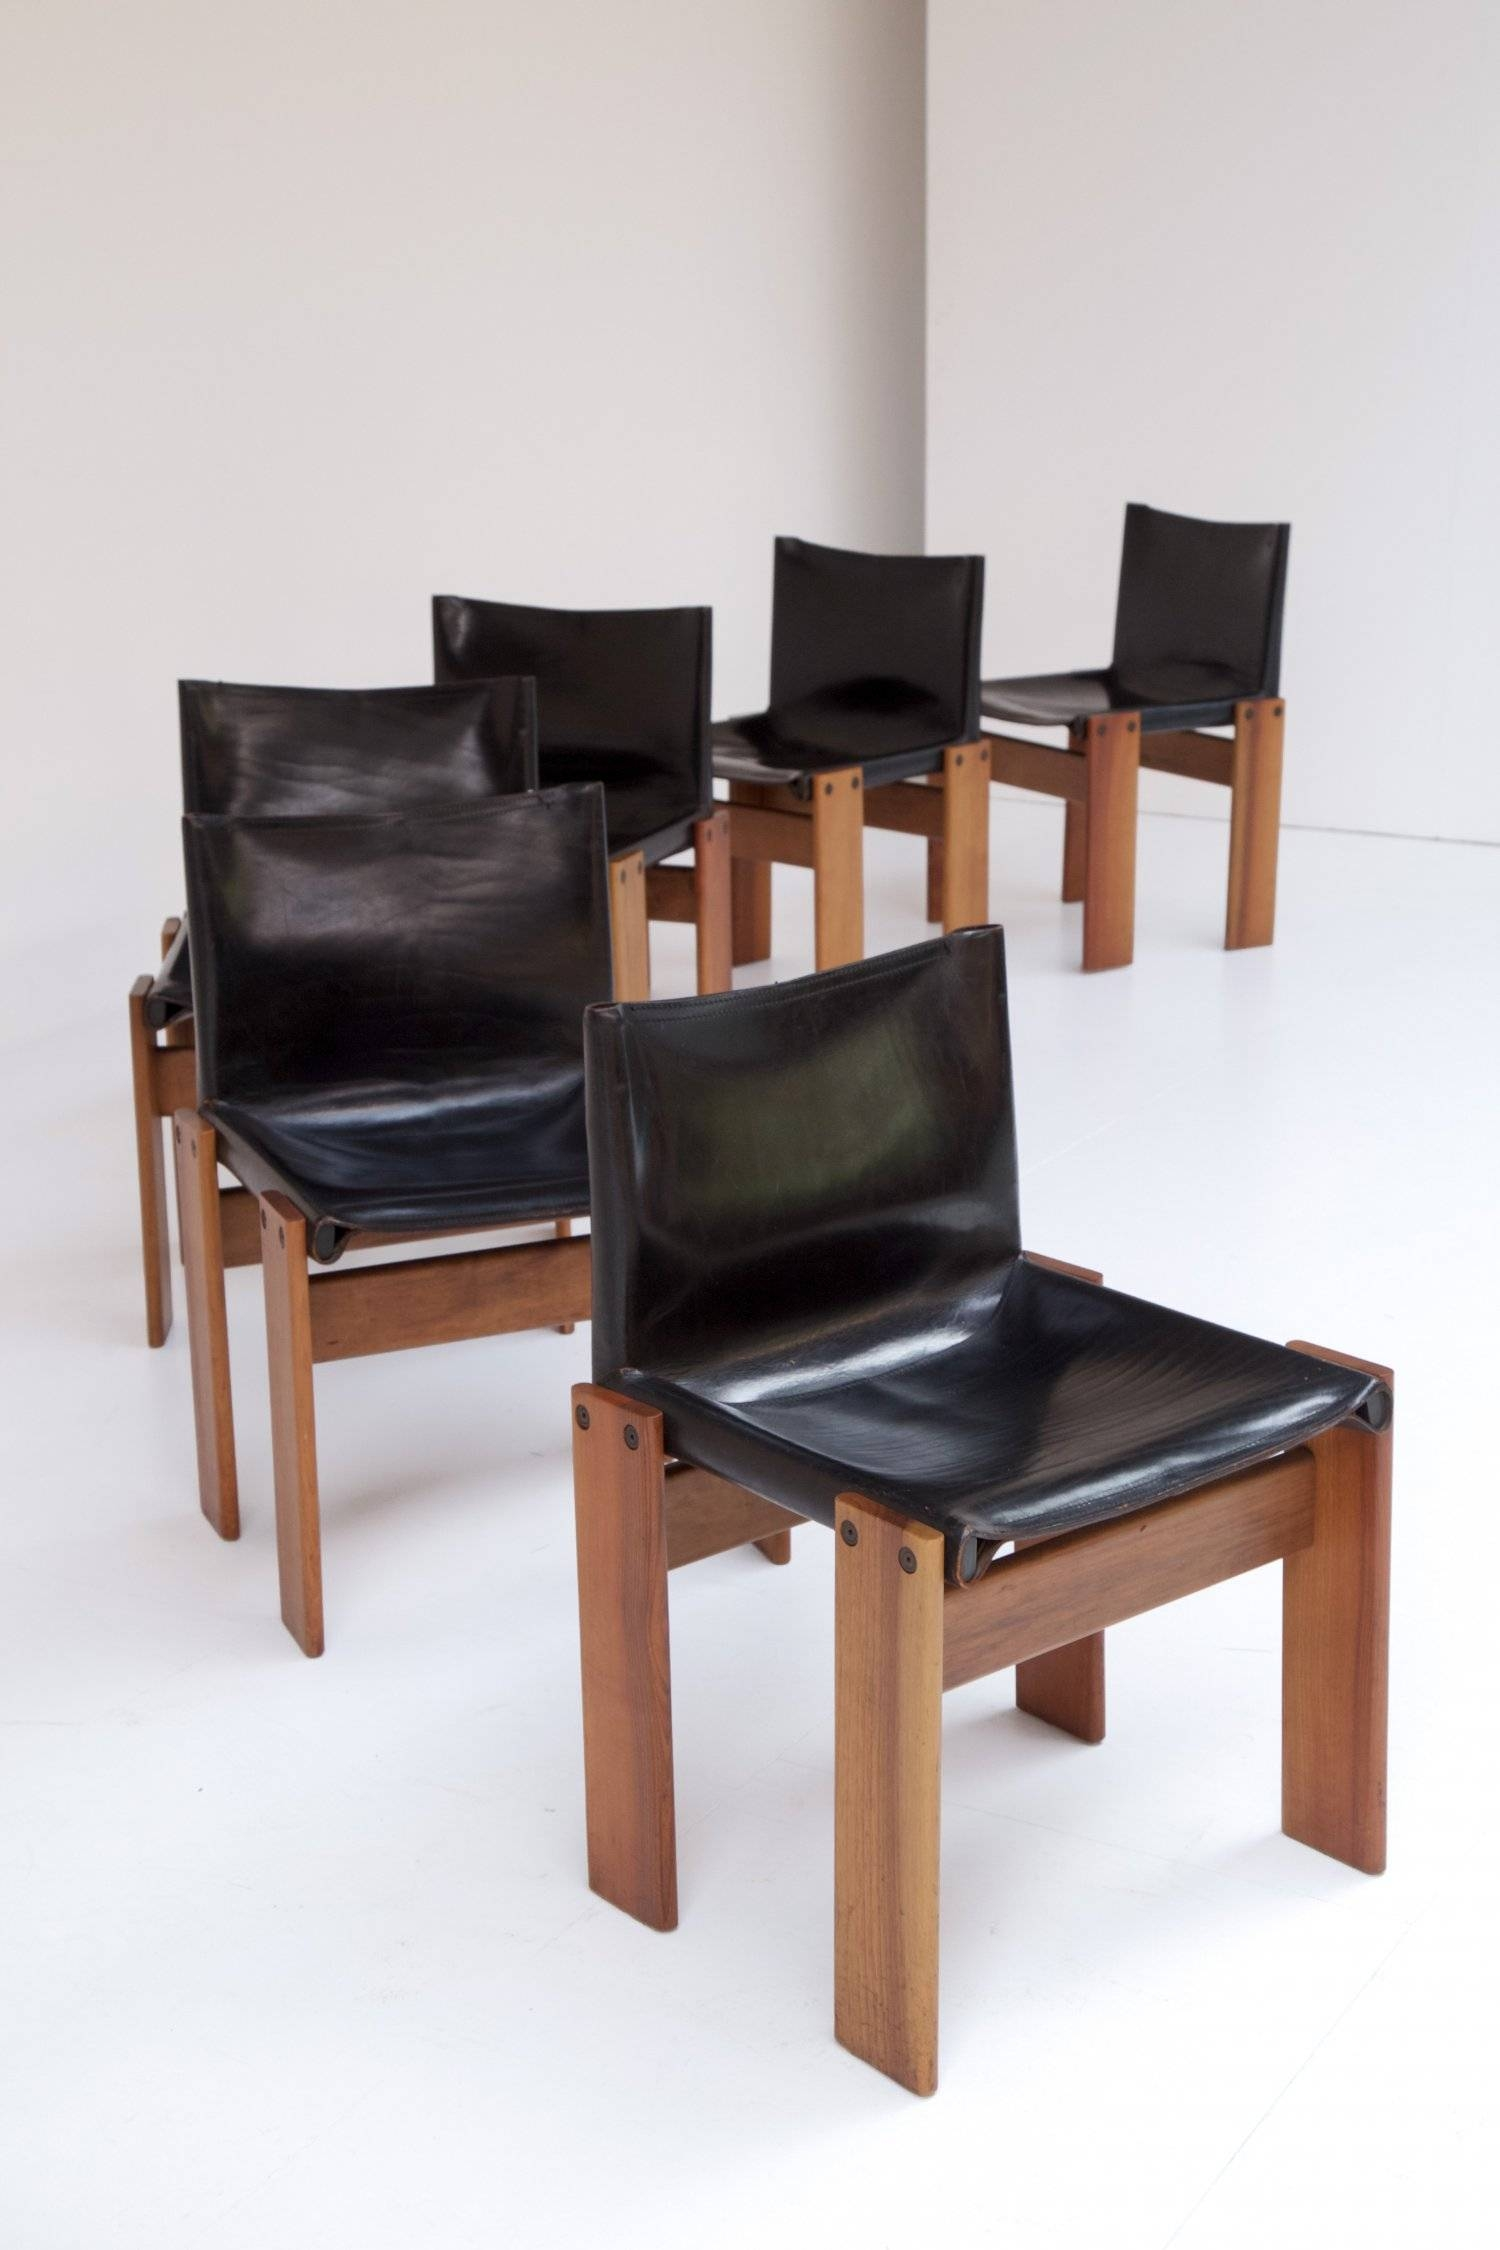 Monk Chairs Afra & Tobia Scarpa – Vanlandschoote Within Monk Chairs (View 13 of 30)